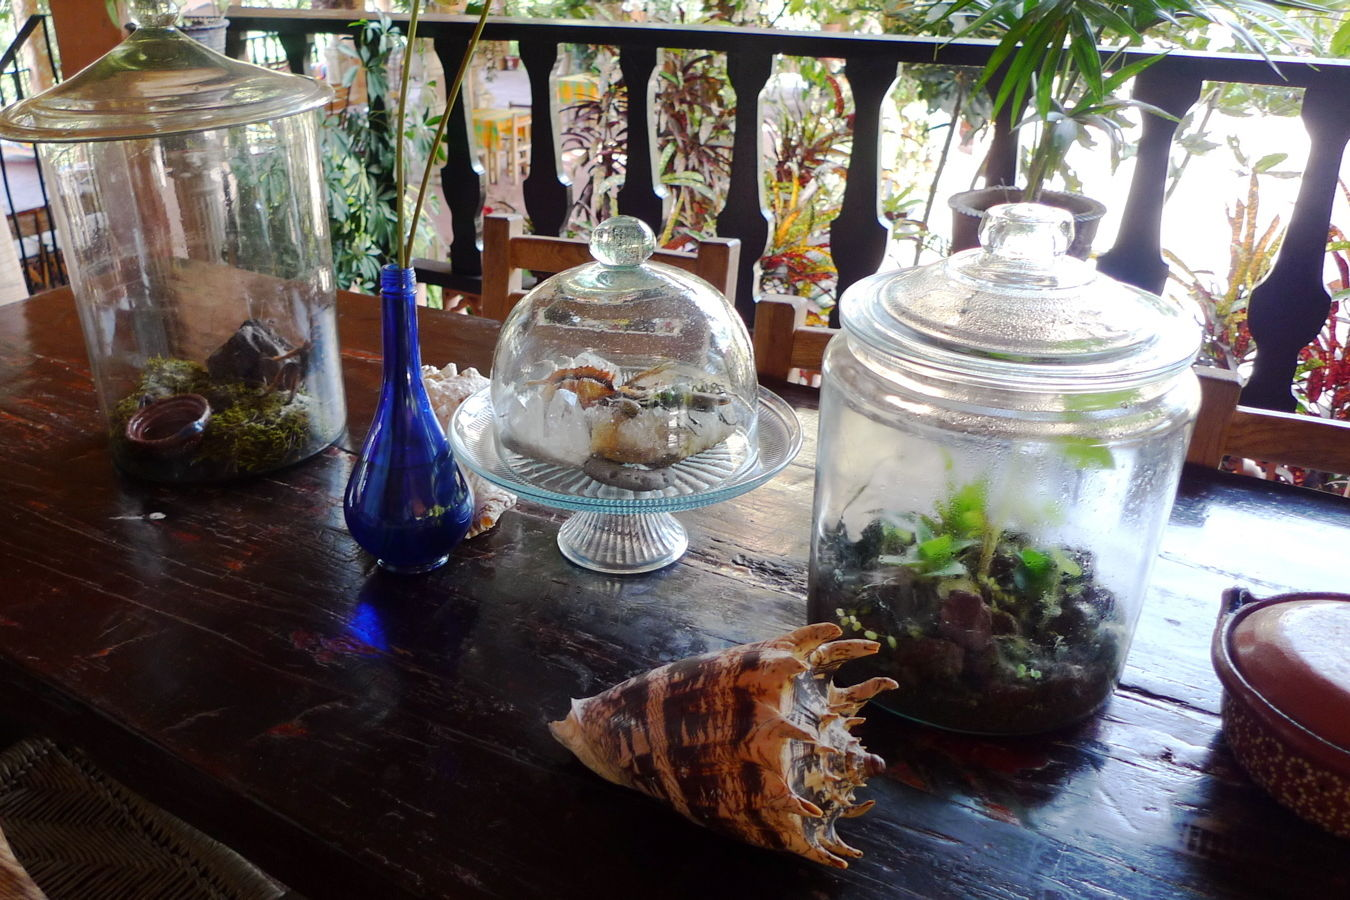 Terrariums on counter icloh3